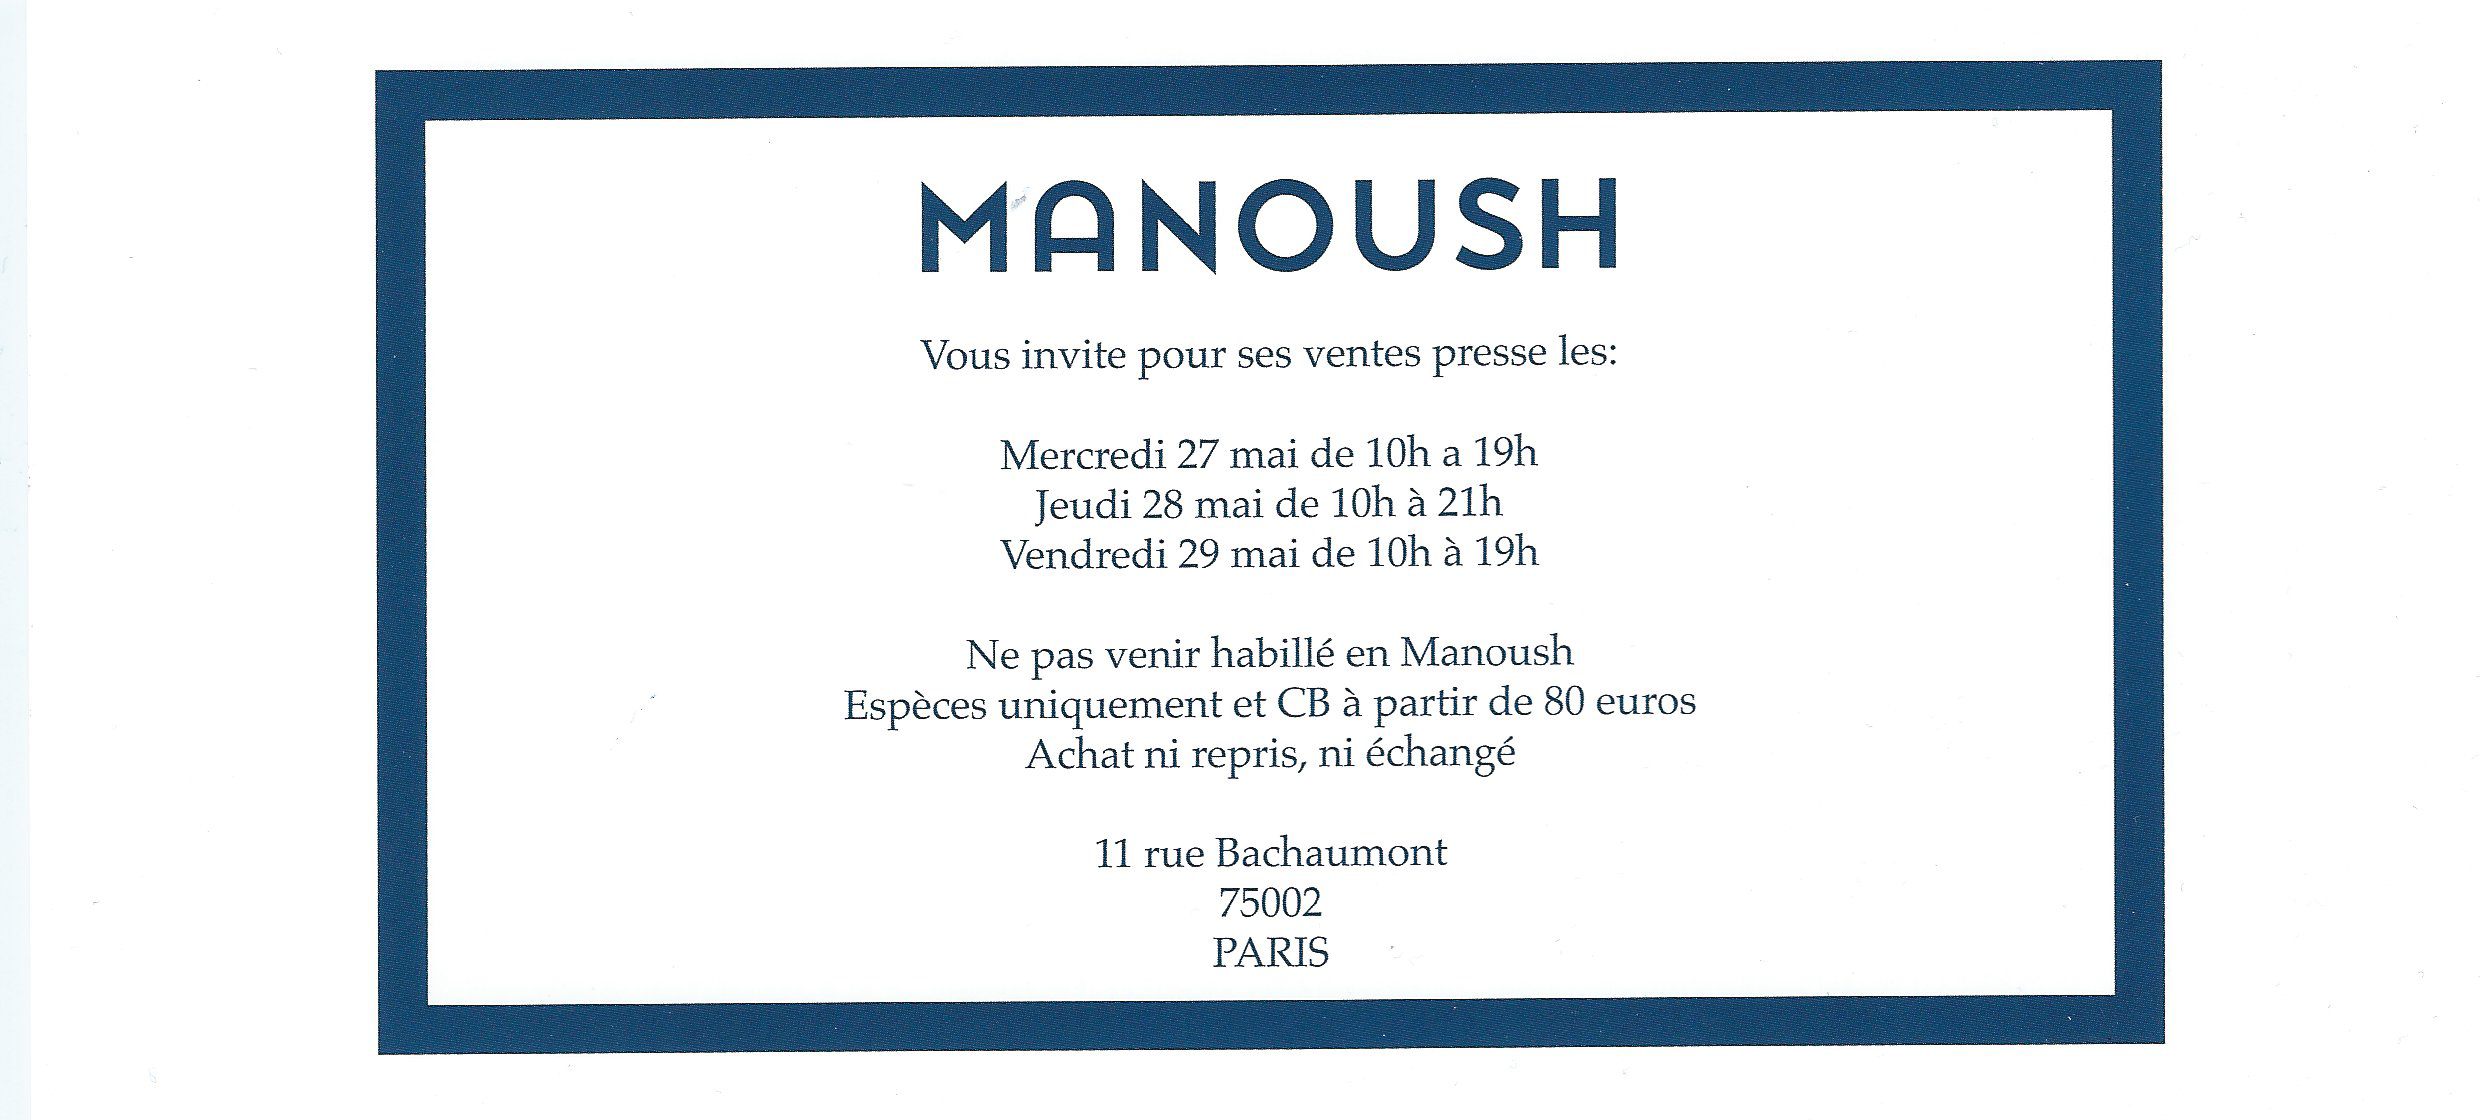 vente-PRESSE-manoush-2015